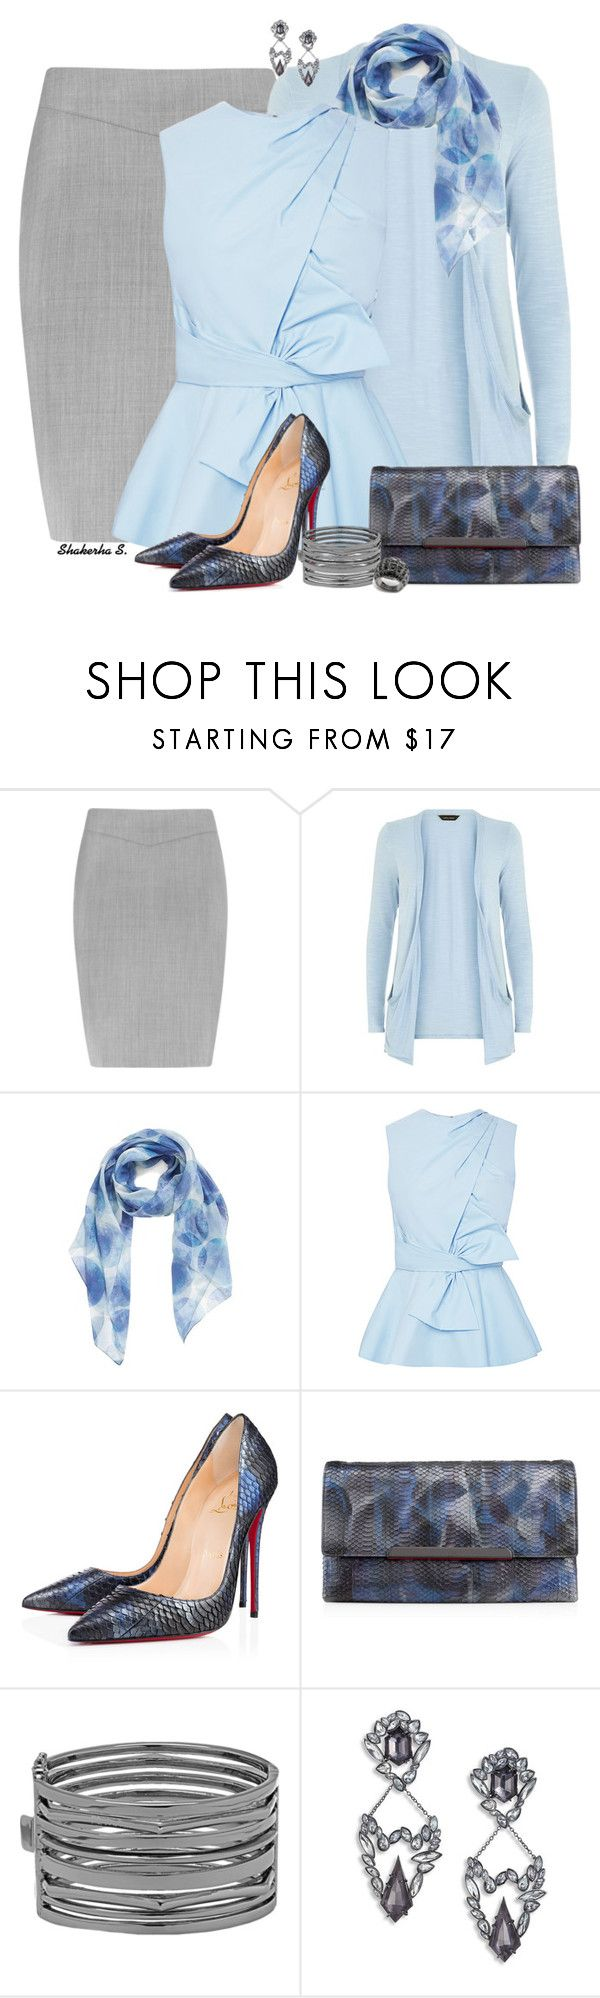 """Baby Blue"" by shakerhaallen ❤ liked on Polyvore featuring Reiss, Nordstrom, Prabal Gurung, Christian Louboutin, Nine West, Alexis Bittar and Coach"